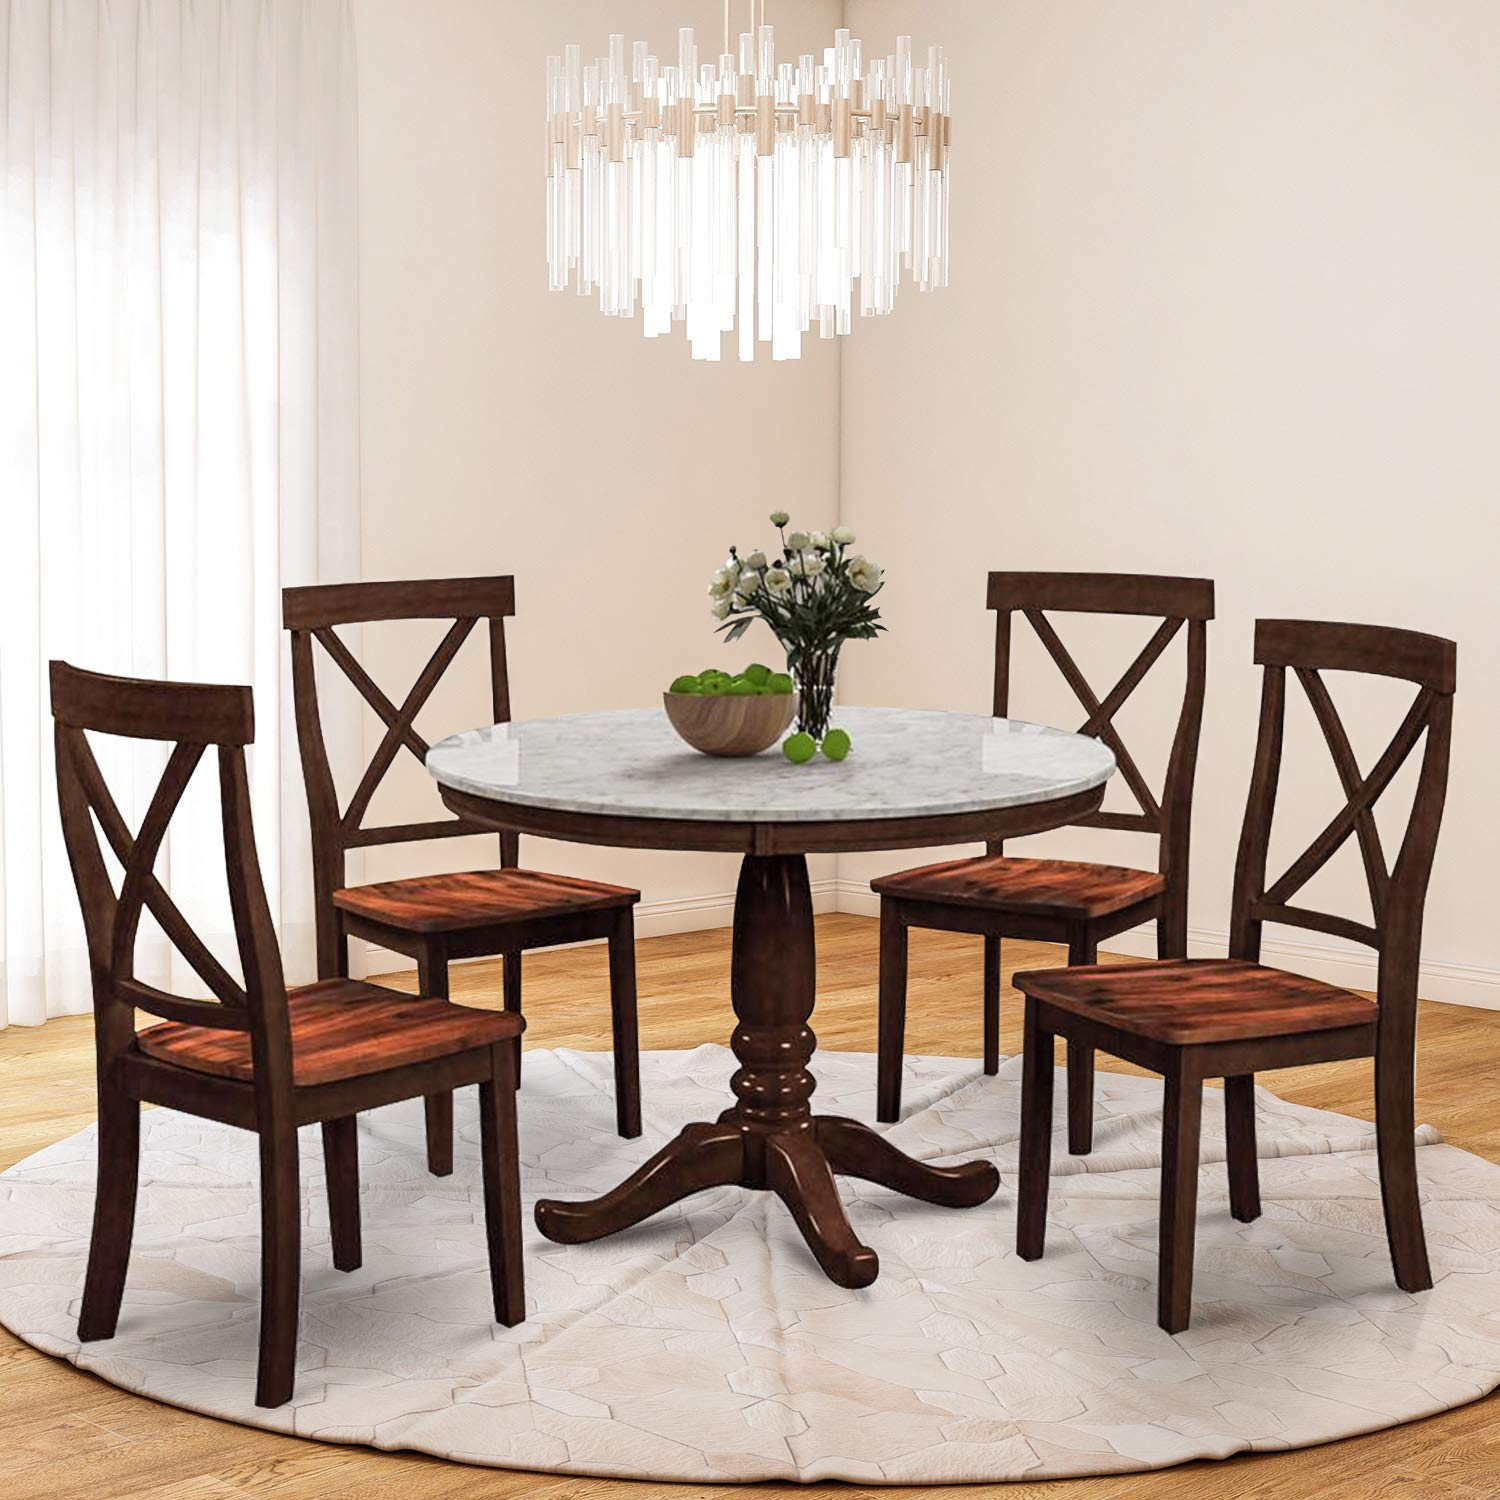 Harper&Bright Designs 5 Piece Round Dining Set with 4 Chairs Wood Dining Table Set (Espresso)